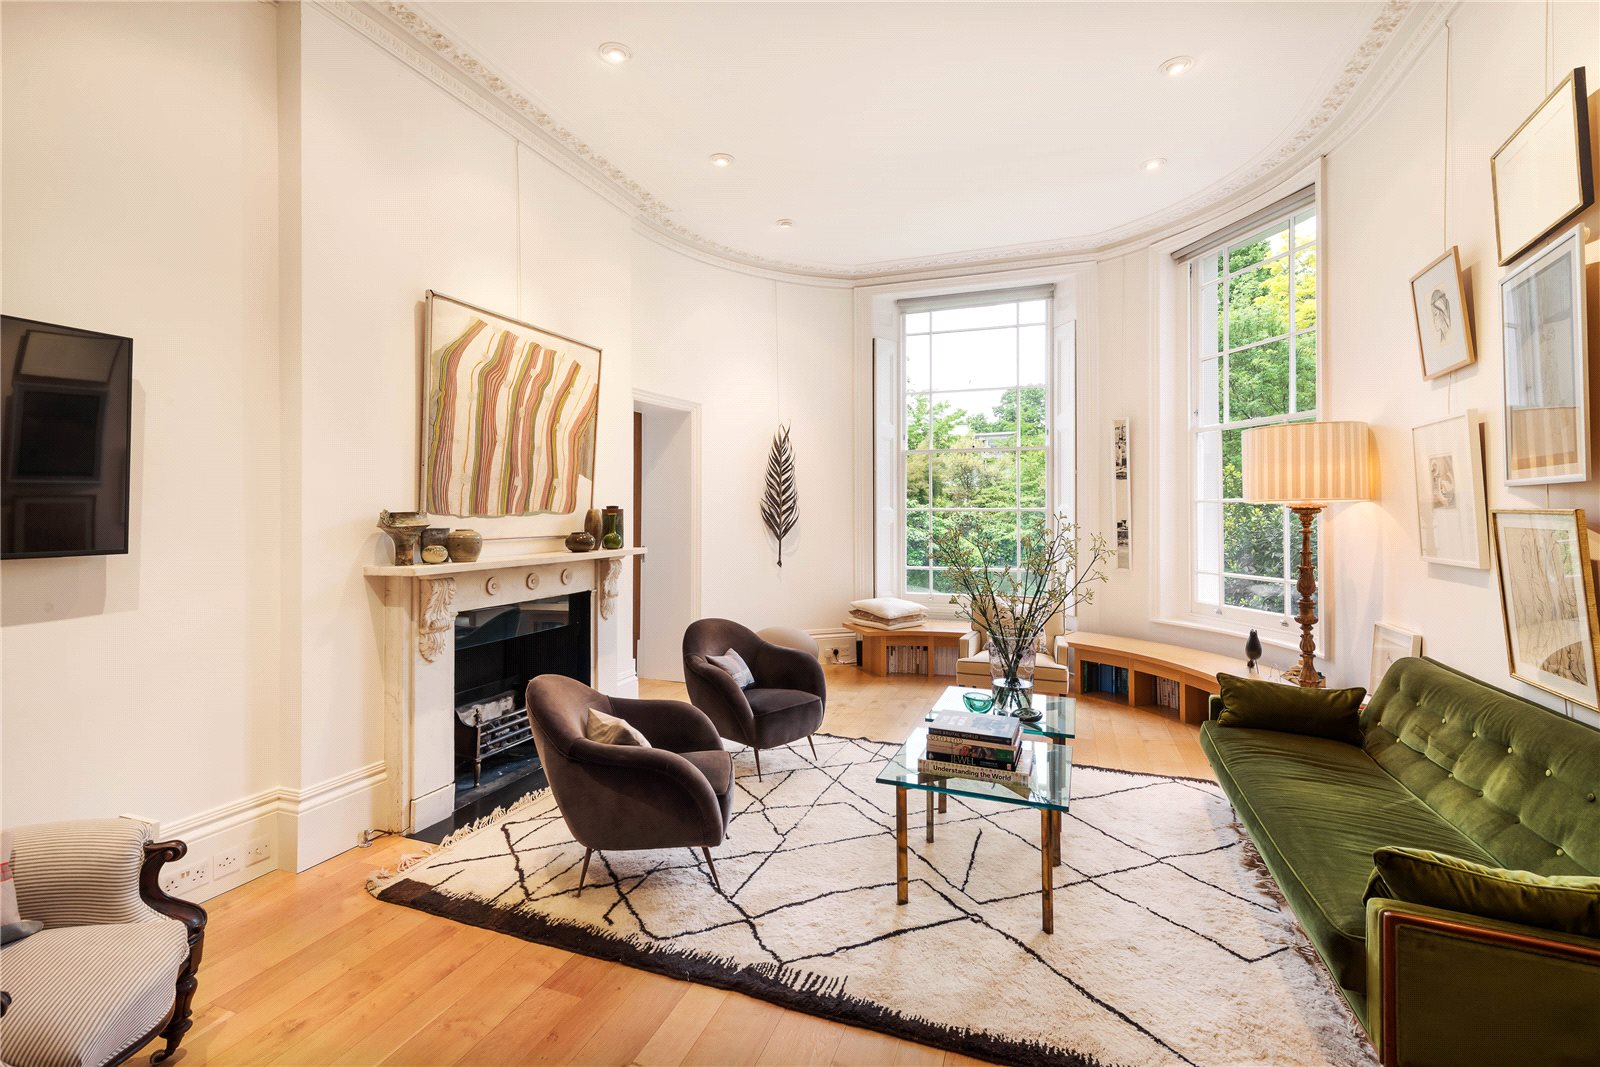 Apartments / Residences for Sale at Weller Court, Ladbroke Road, Holland Park, London, W11 Holland Park, London, England